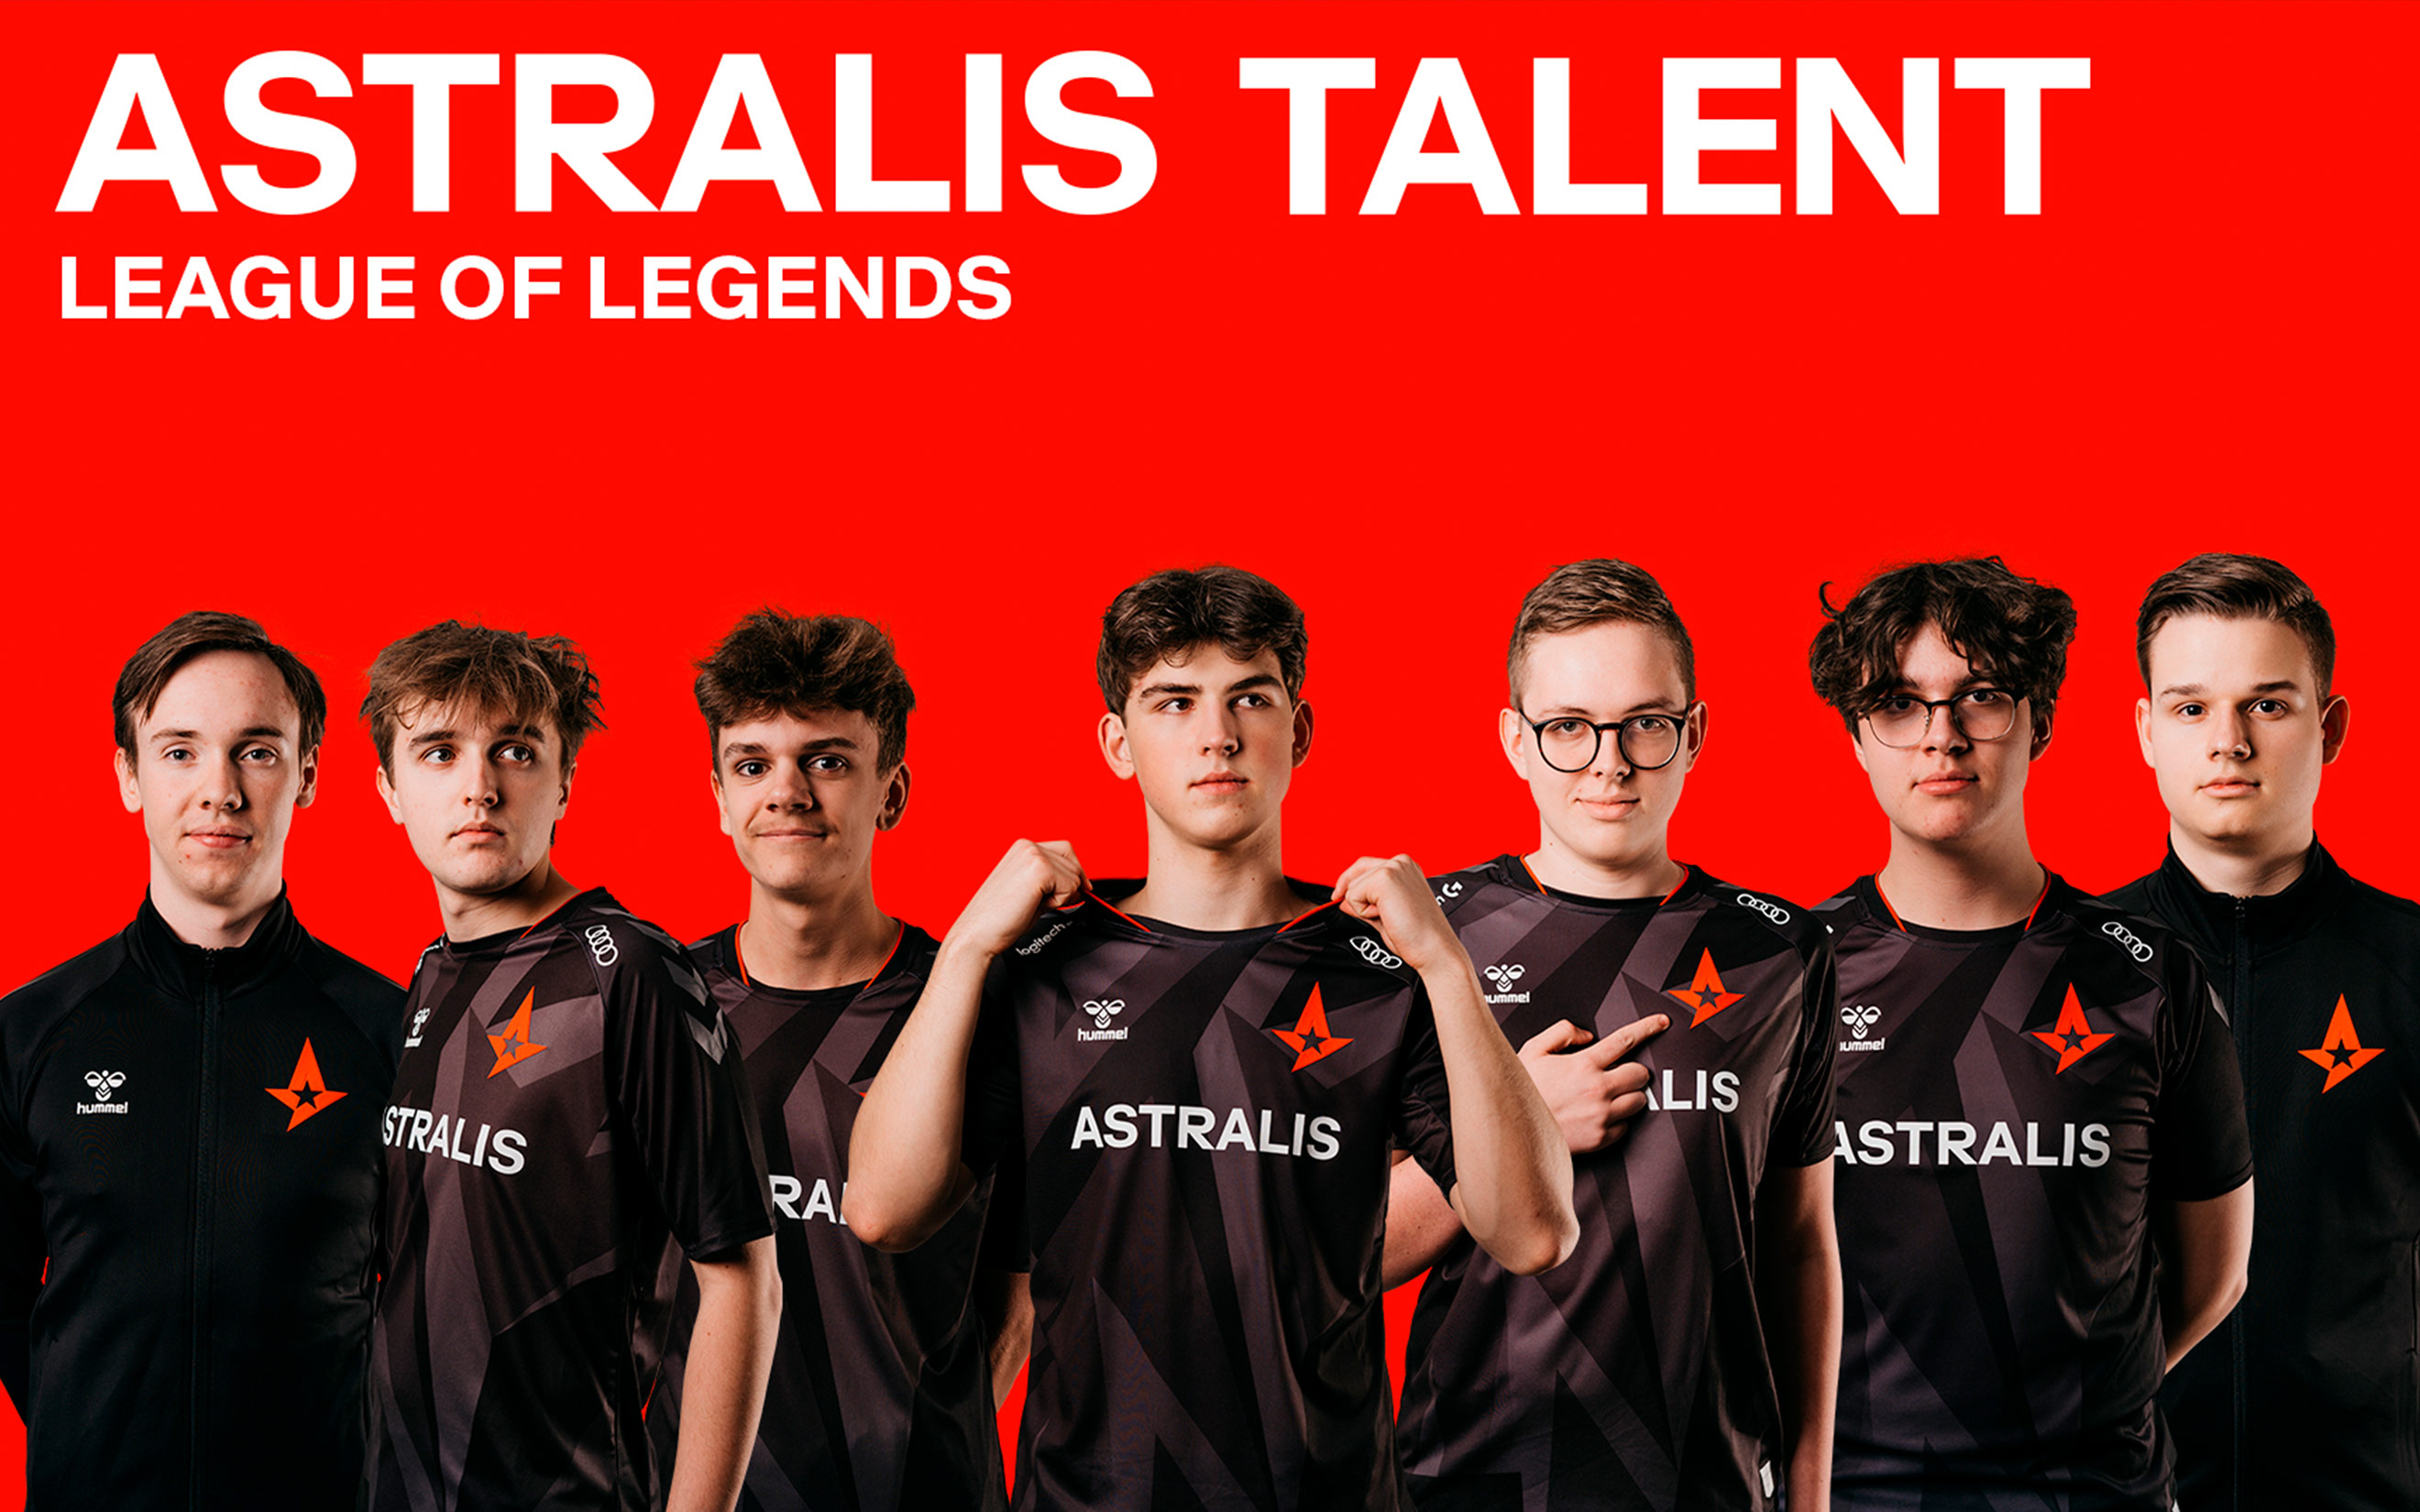 Astralis Talent League Of Legends Fighting Through First Tournament